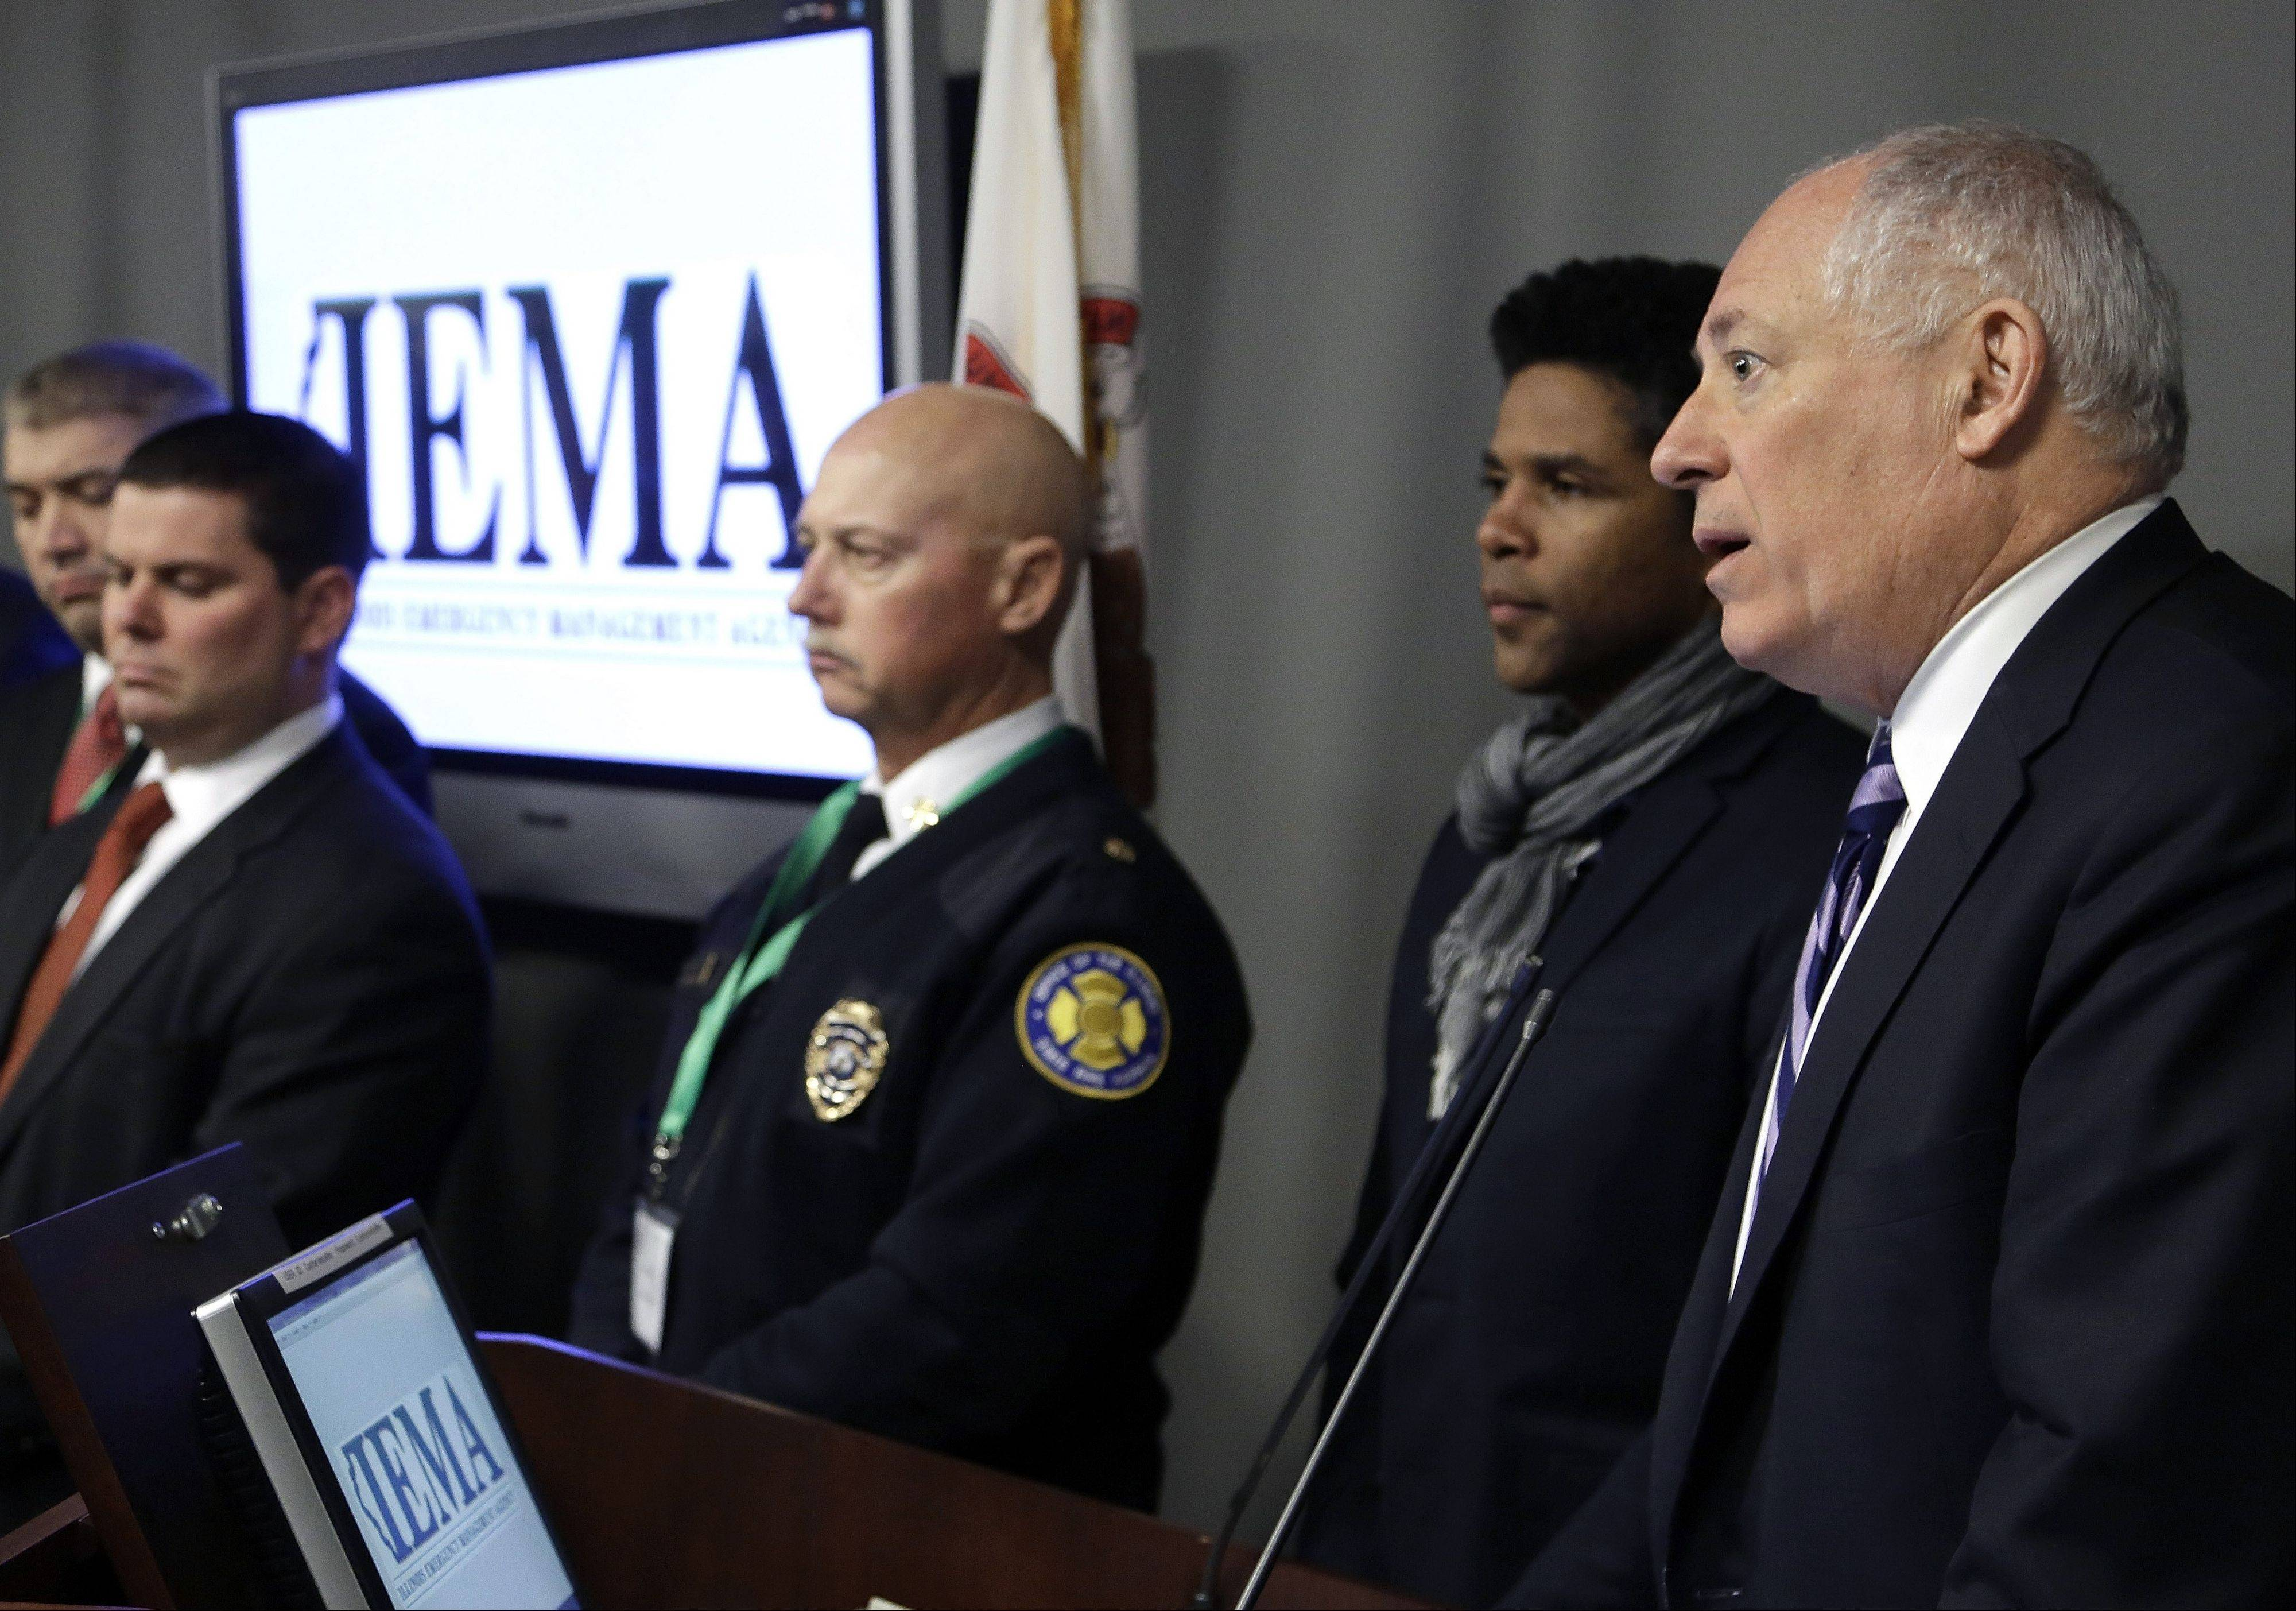 More than 50 people gathered Tuesday at the Illinois Emergency Management Agency in response to a call from Gov. Pat Quinn, right, following last month's Connecticut school shooting.